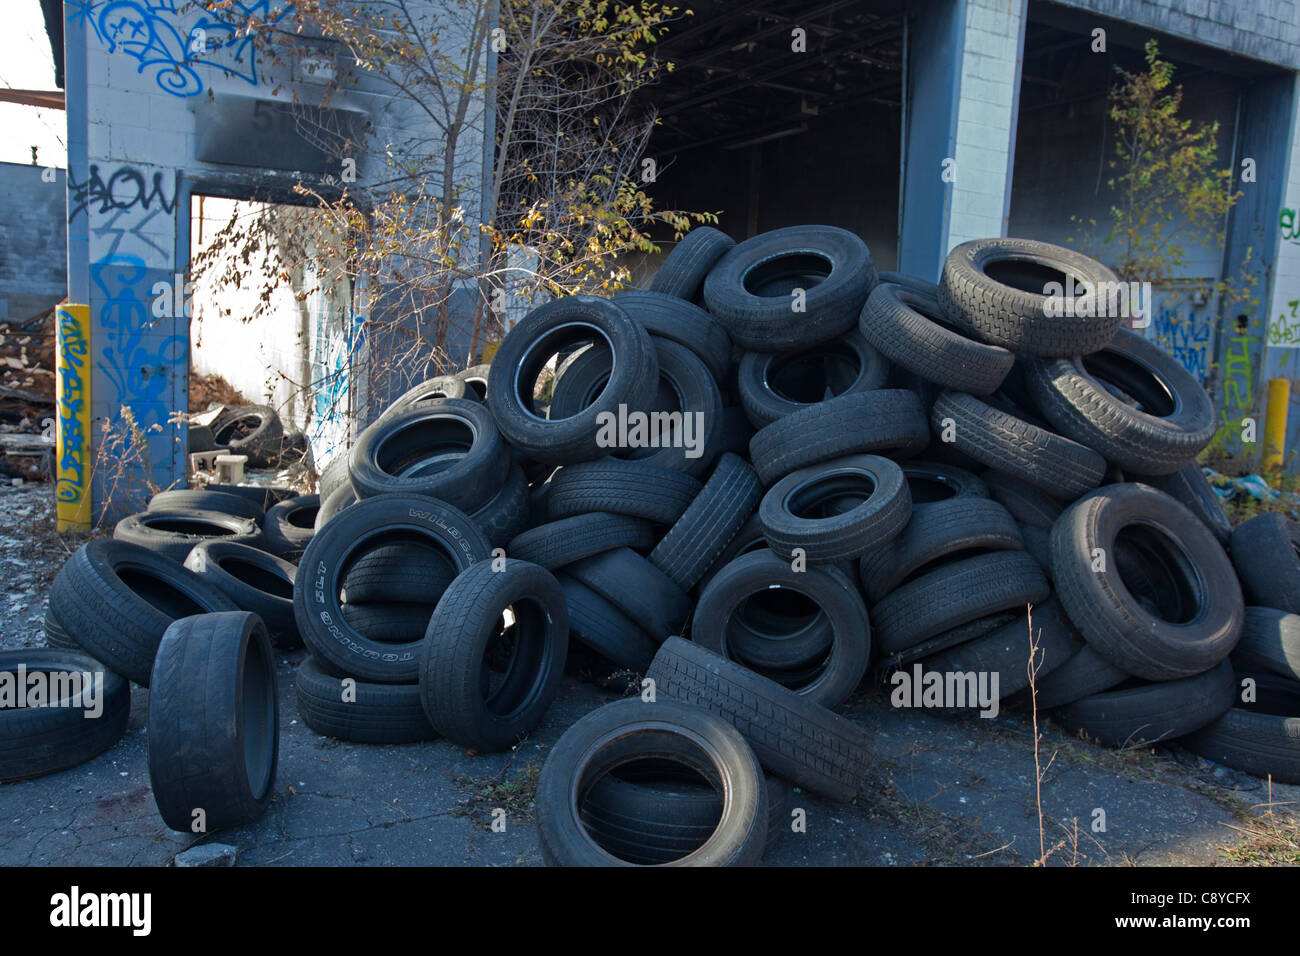 Detroit, Michigan - Old tires dumped outside an abandoned building in an industrial area. - Stock Image